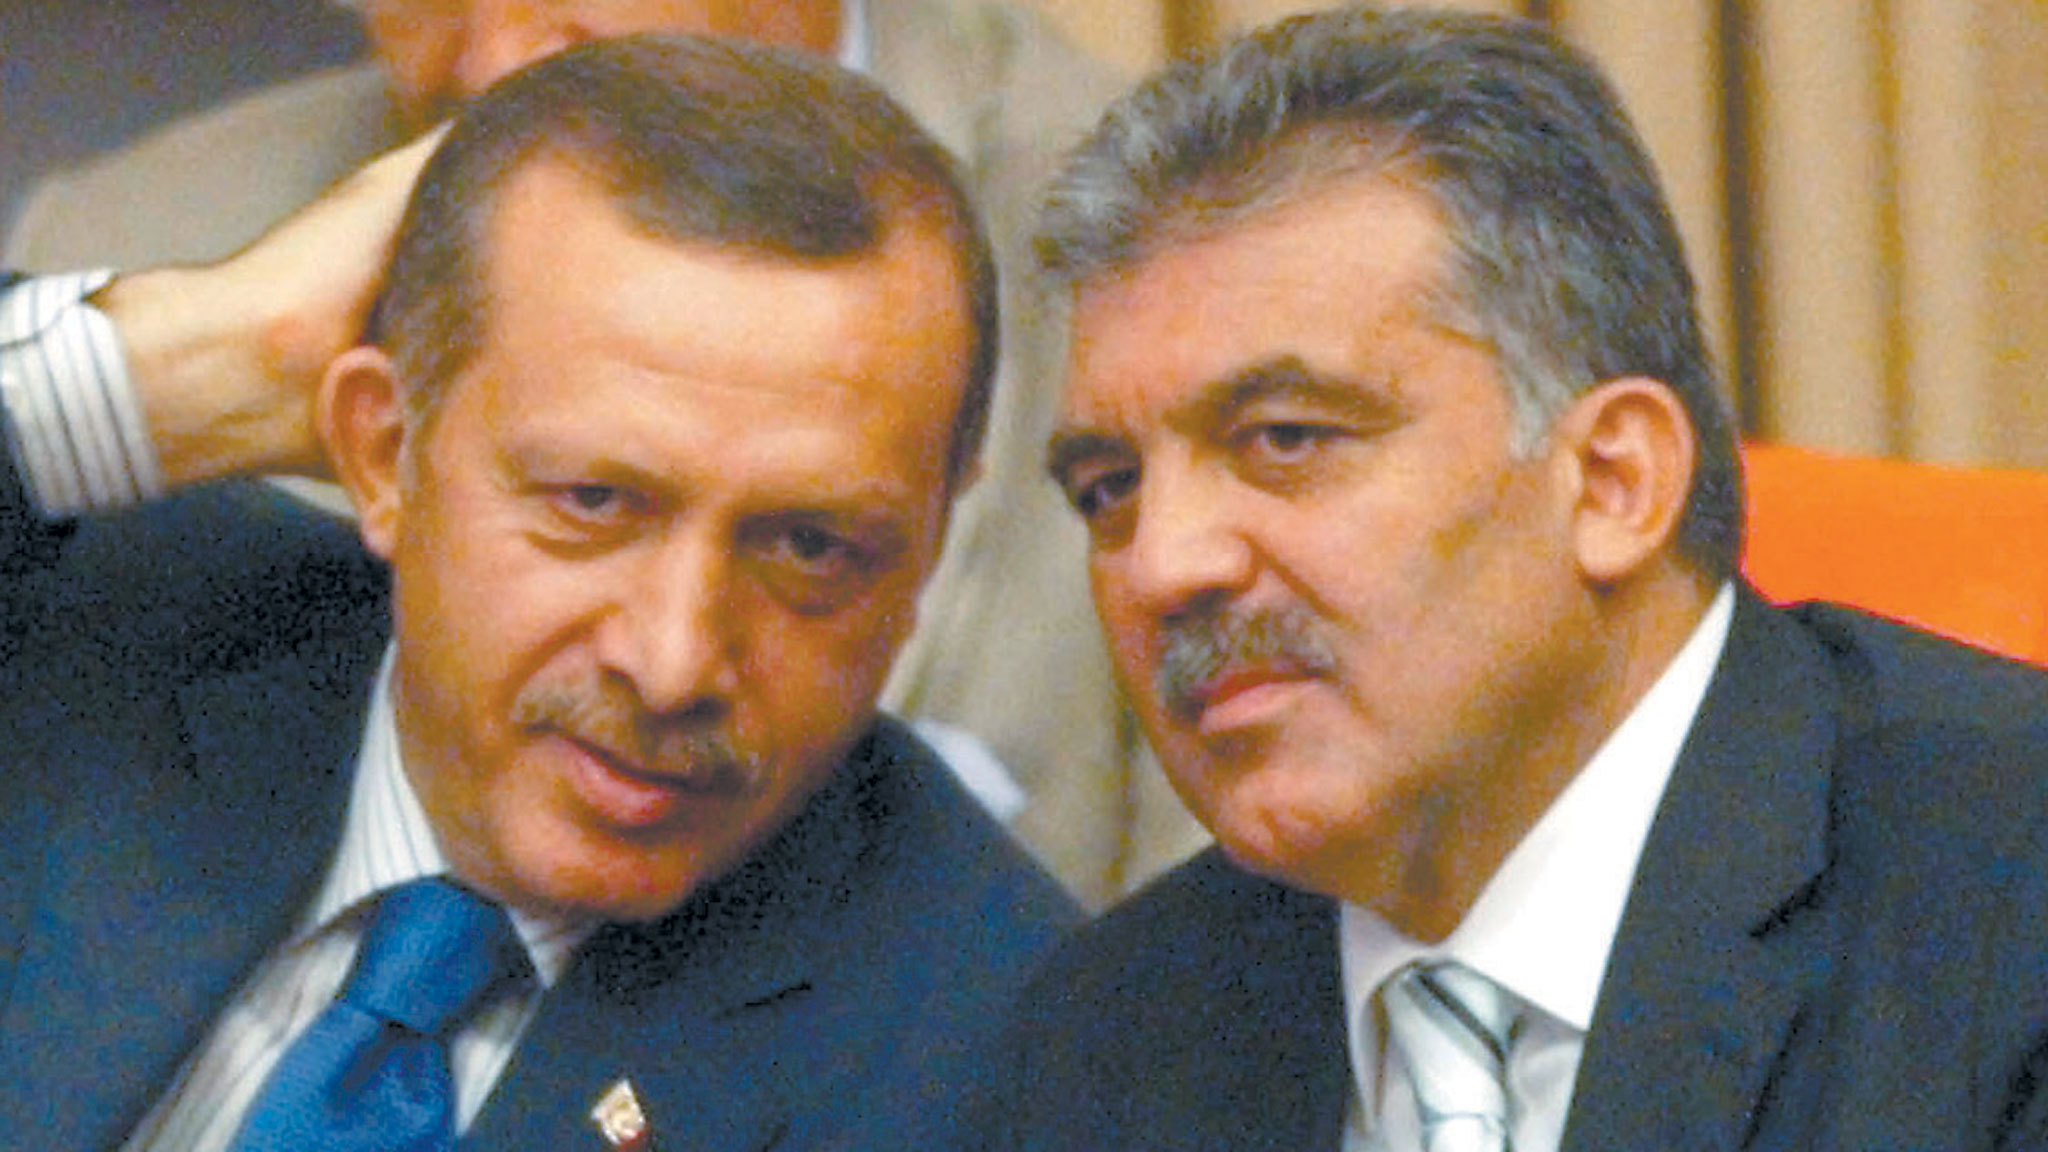 Gul Rule Gul Rules Out Swapping Roles With Erdogan